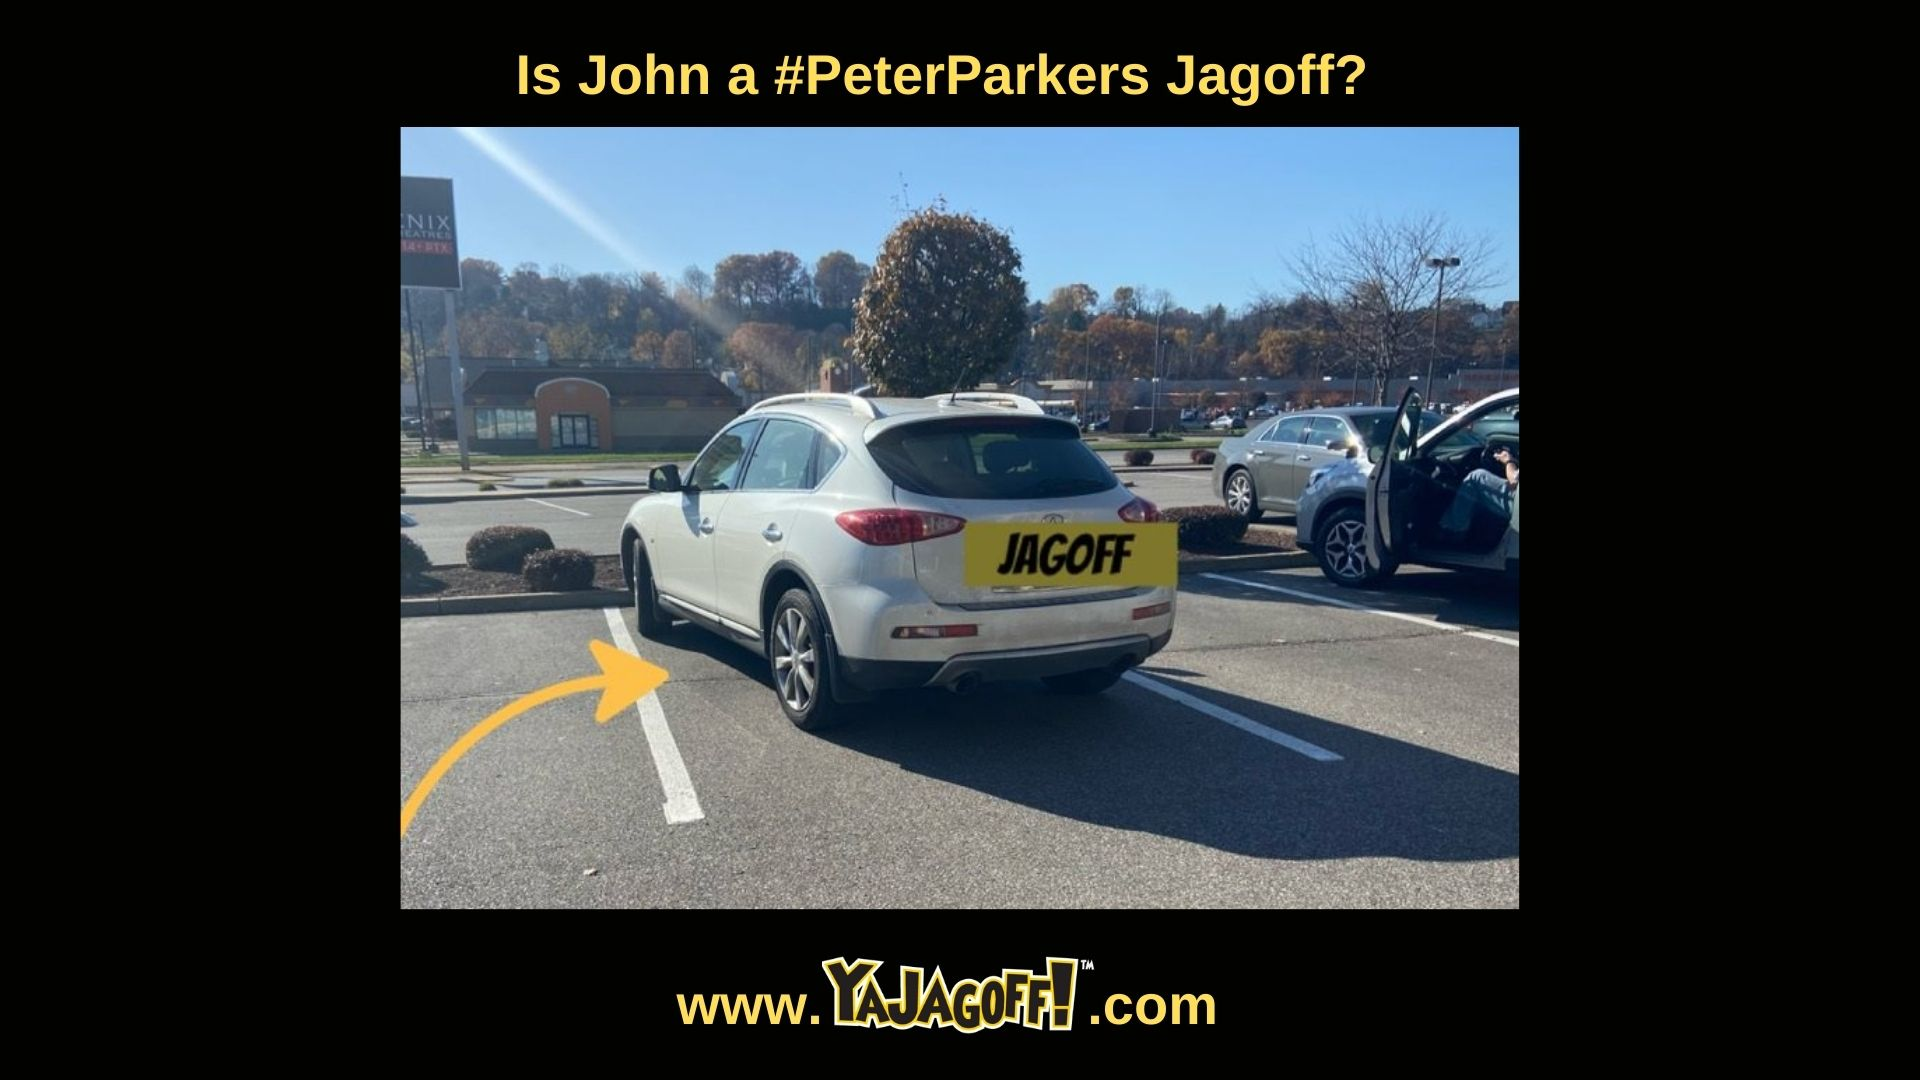 Jagoff Parking in Pittsurgh